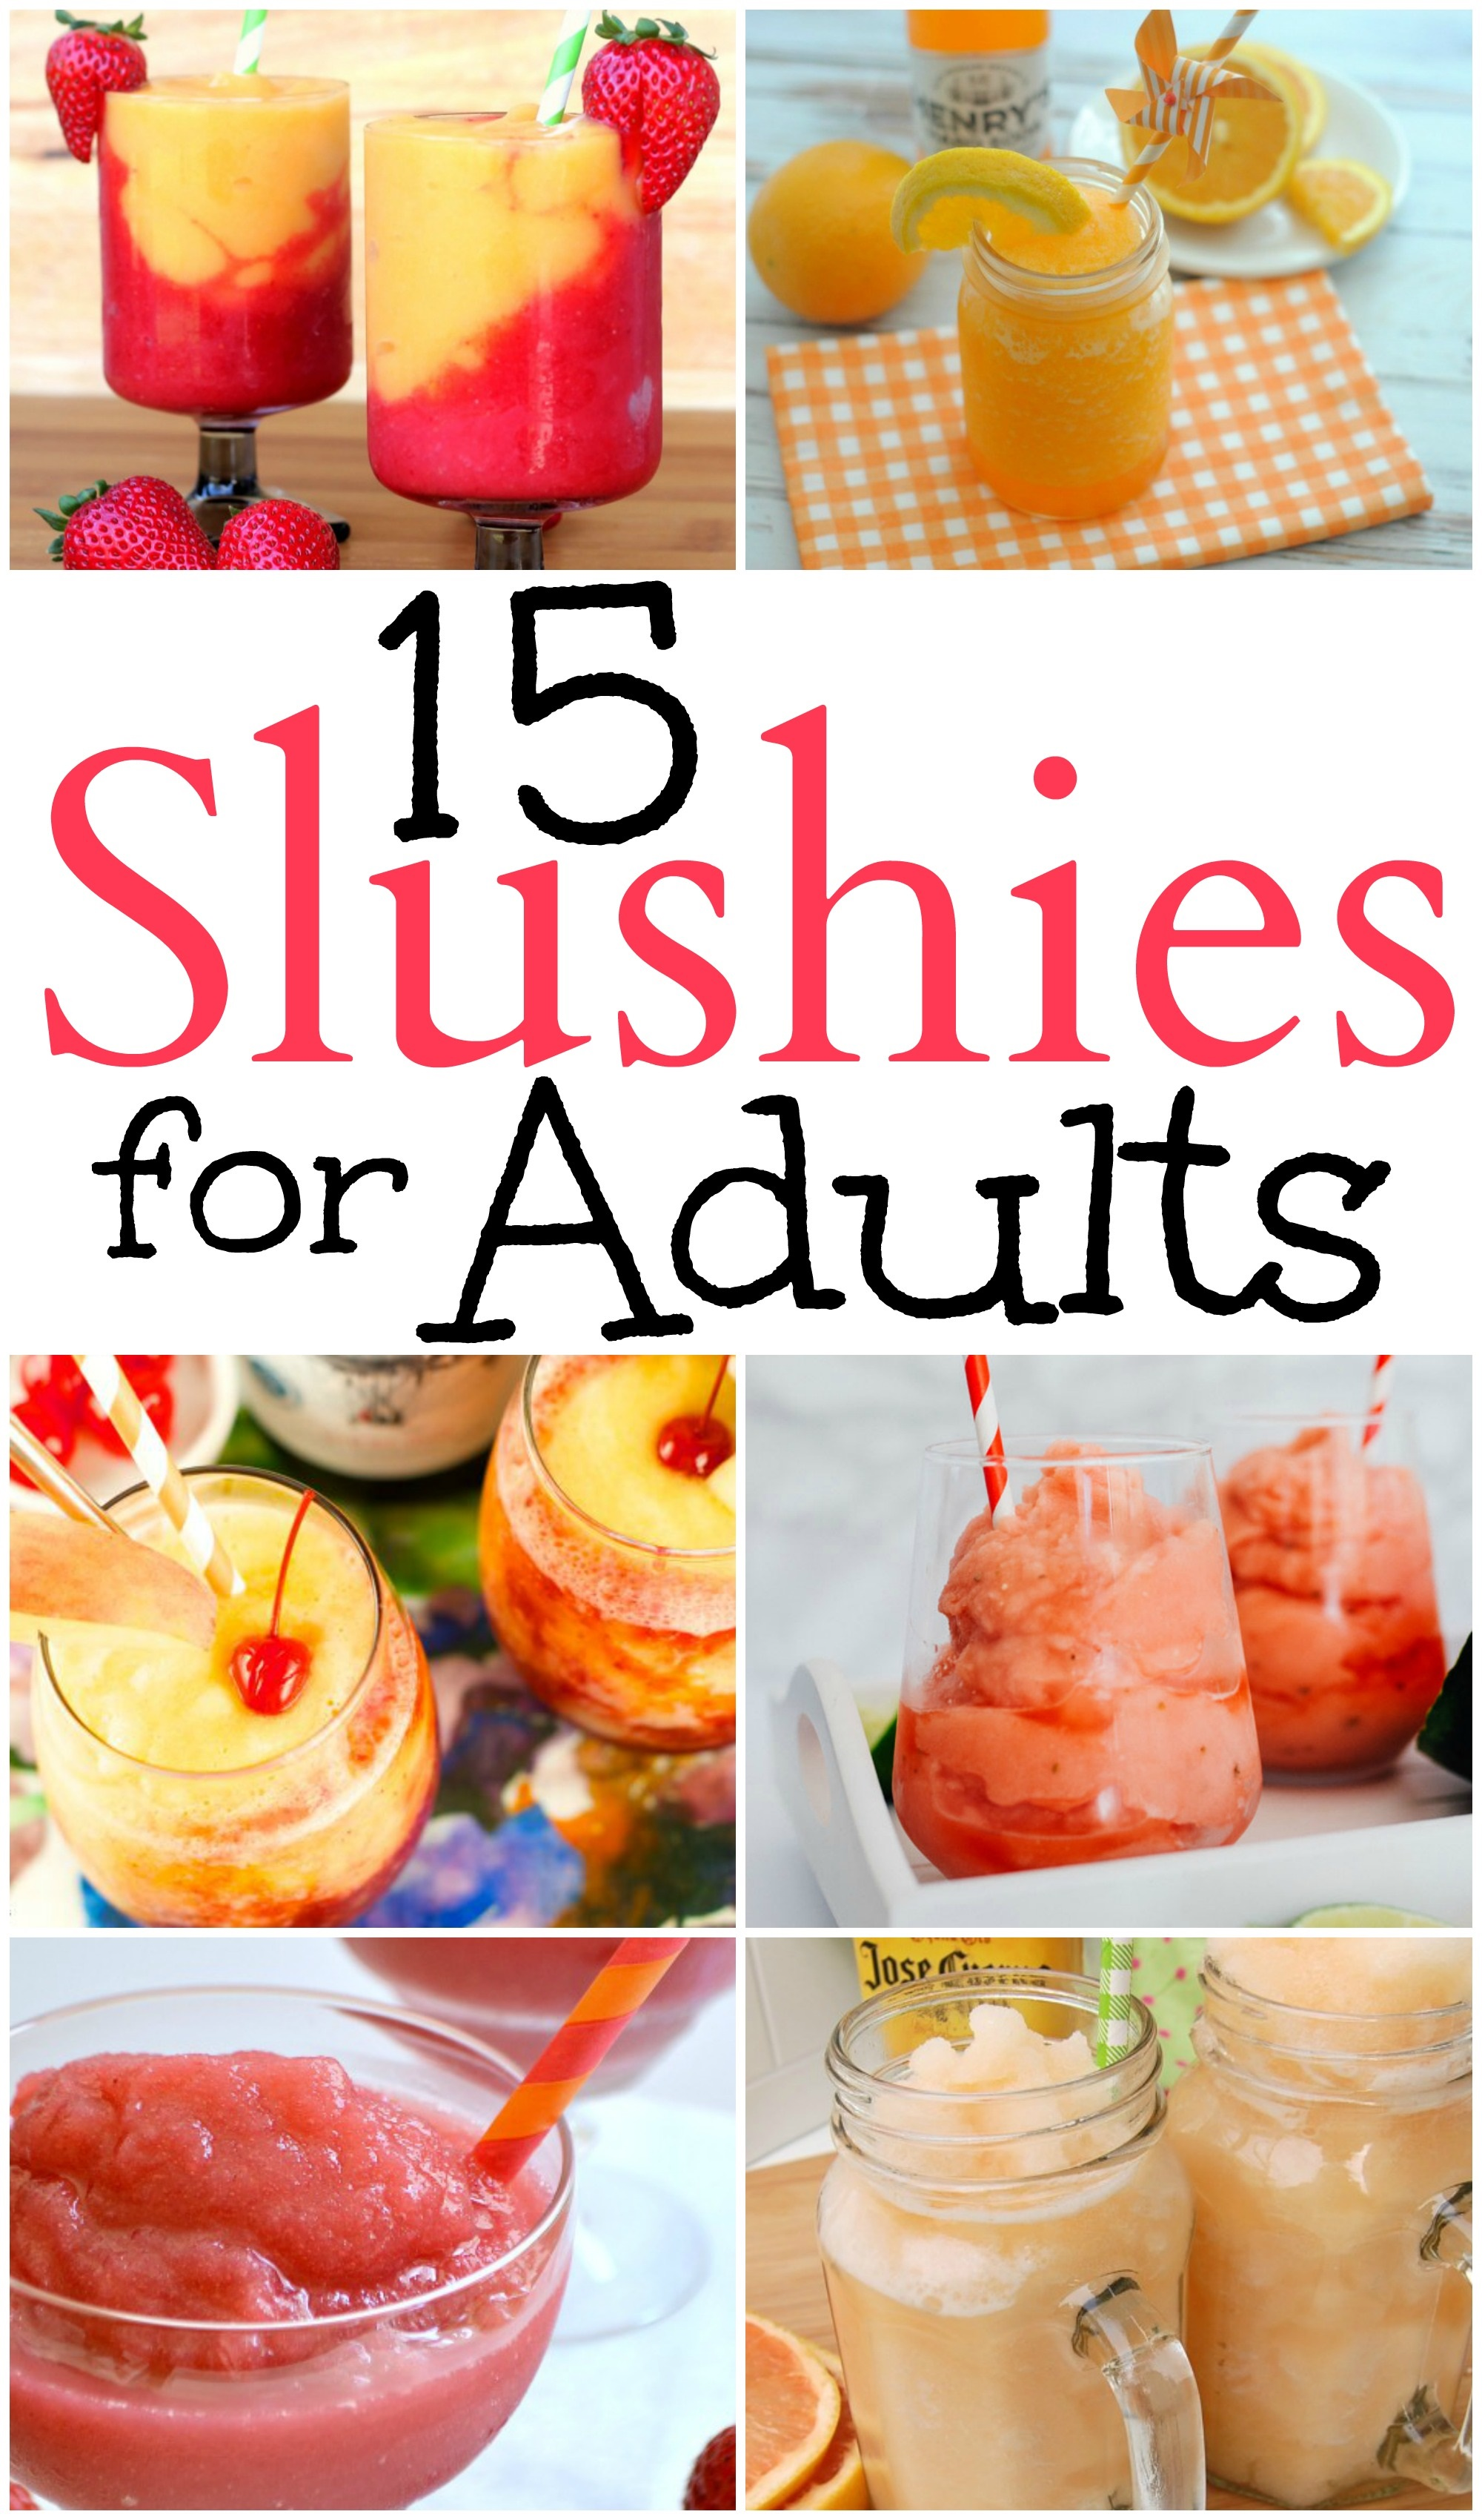 Slushies for Adults a summertime cocktail that hits the spot